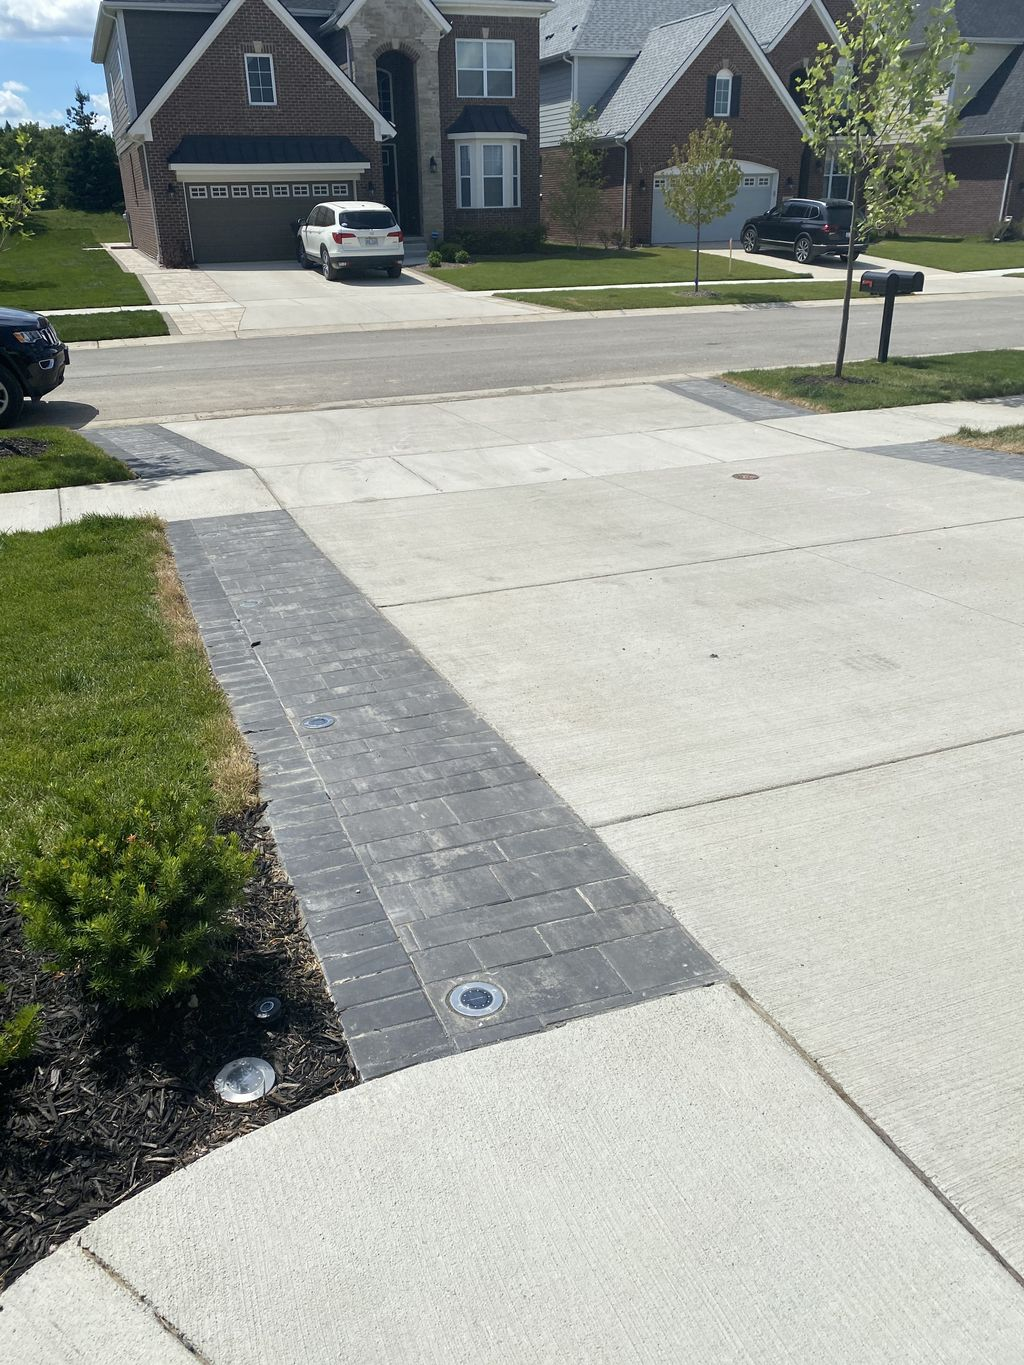 Driveway and path extension